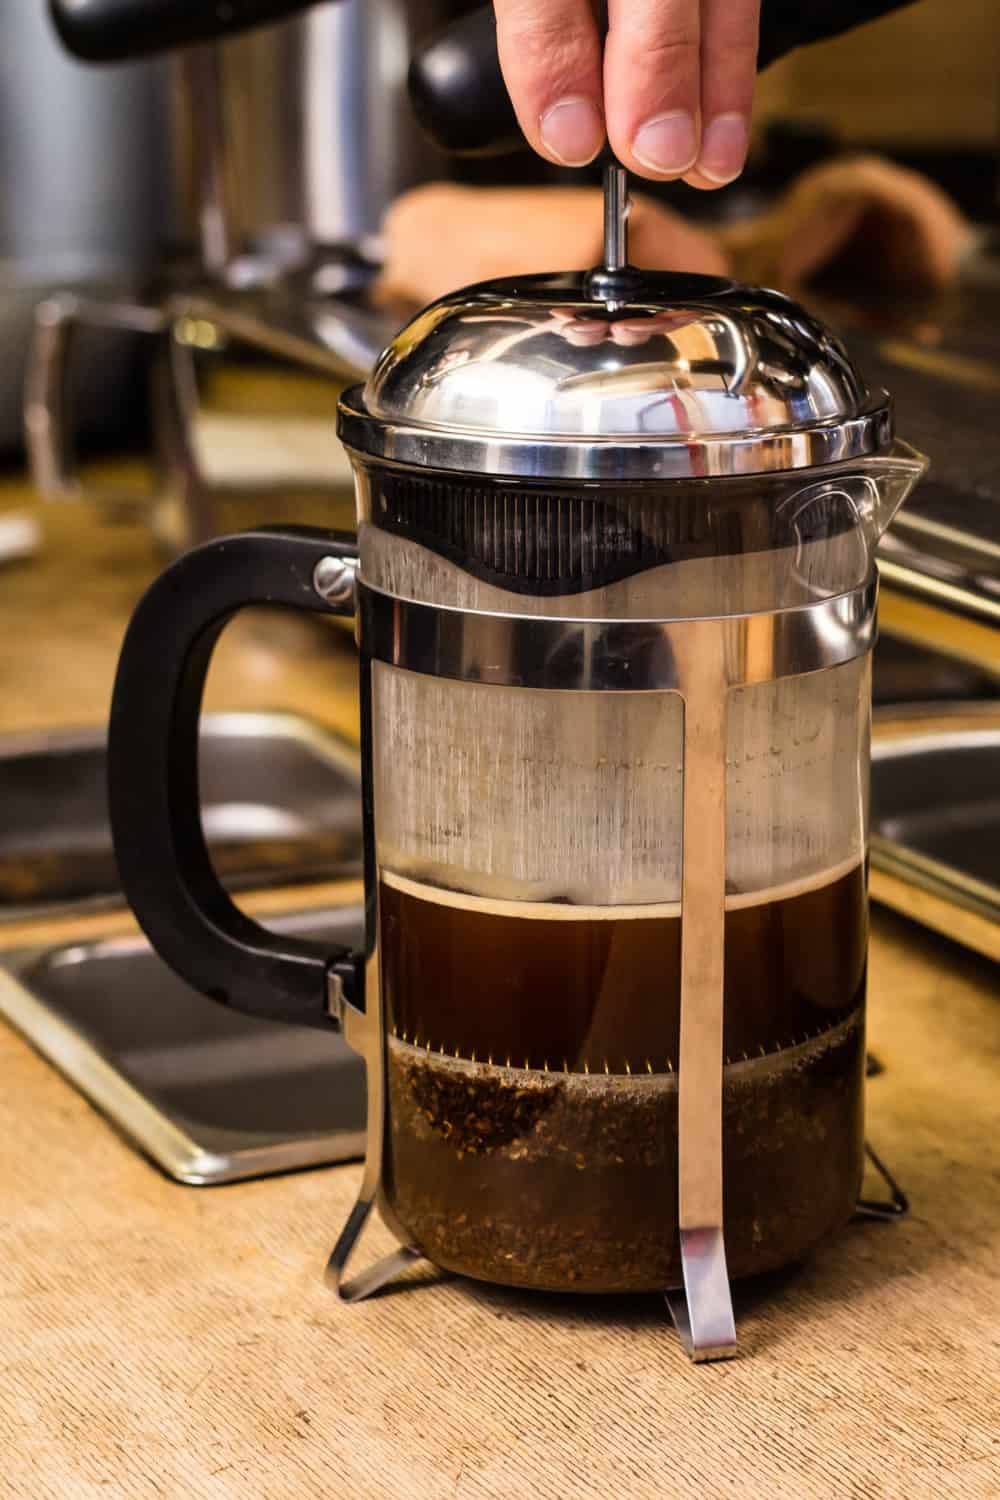 So what is French press coffee